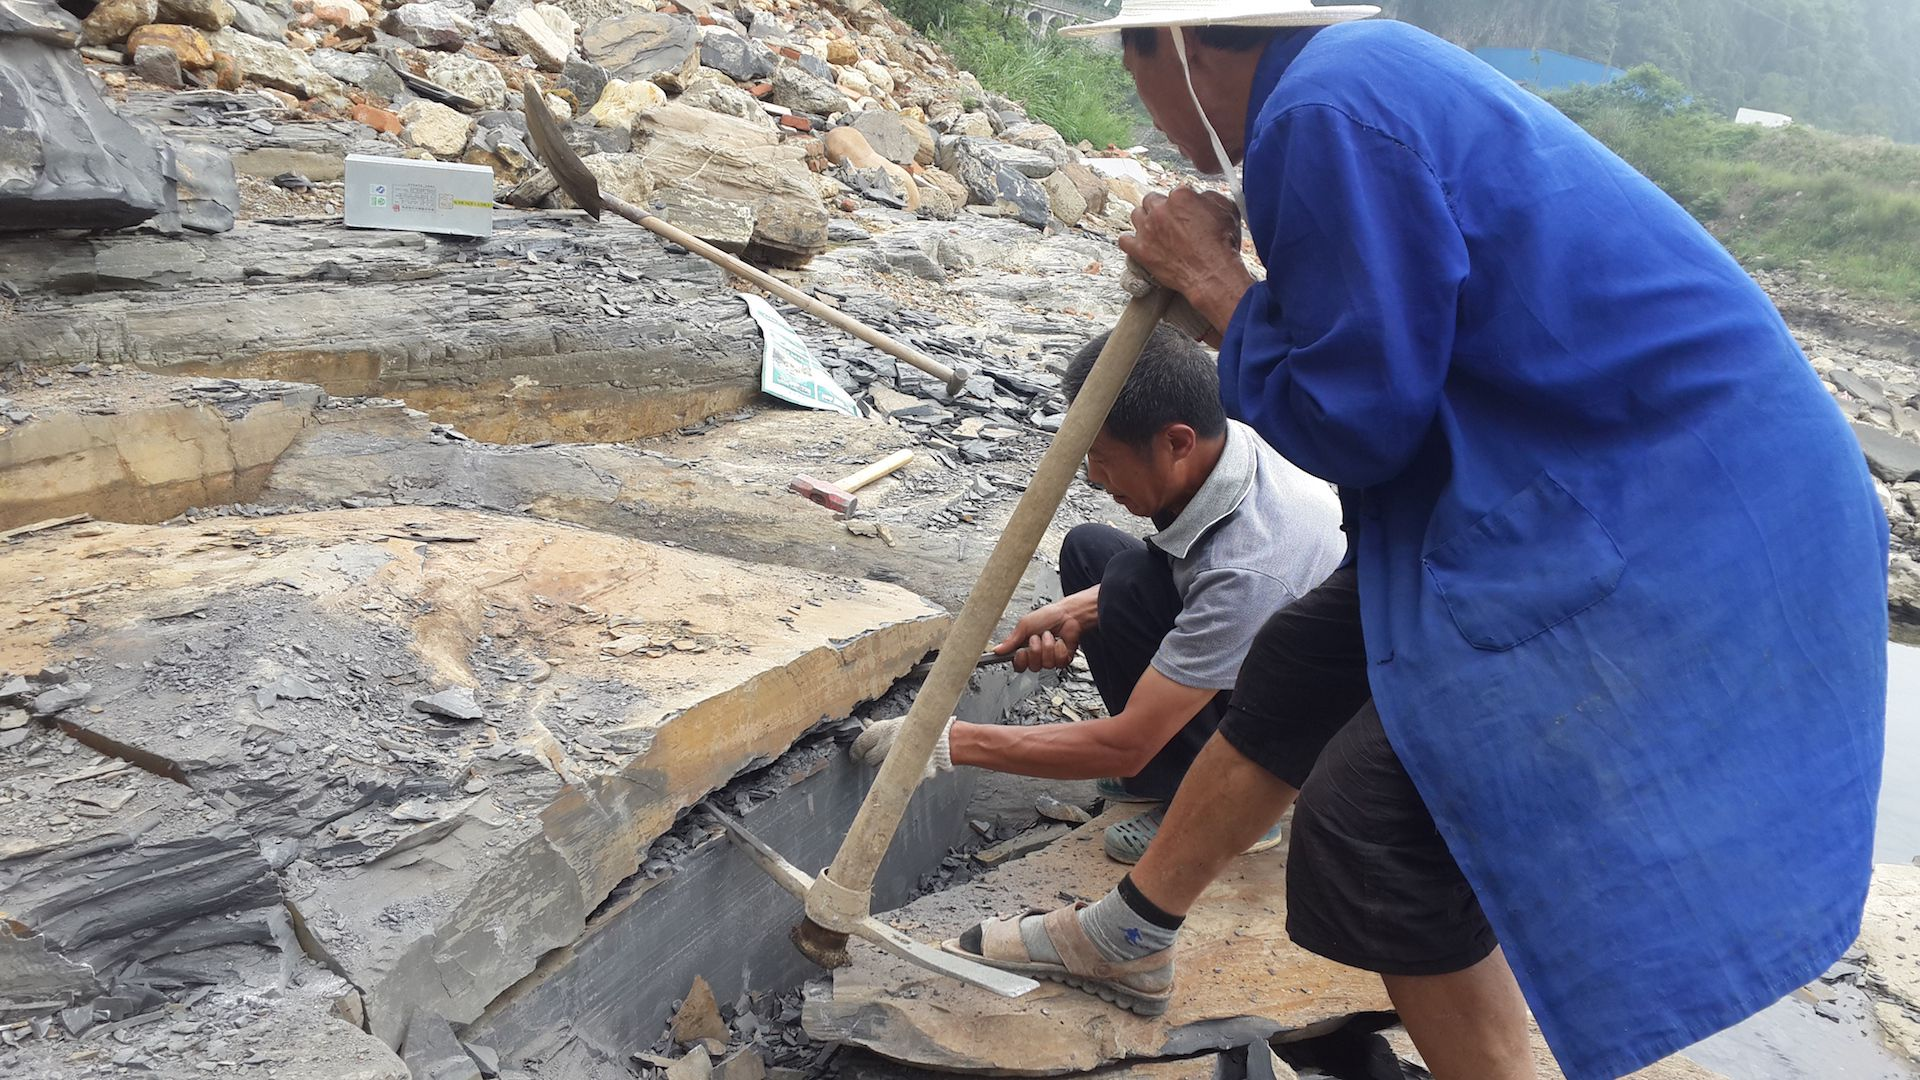 Scientists work to dig up fossils at the Qingjiang biota in China.